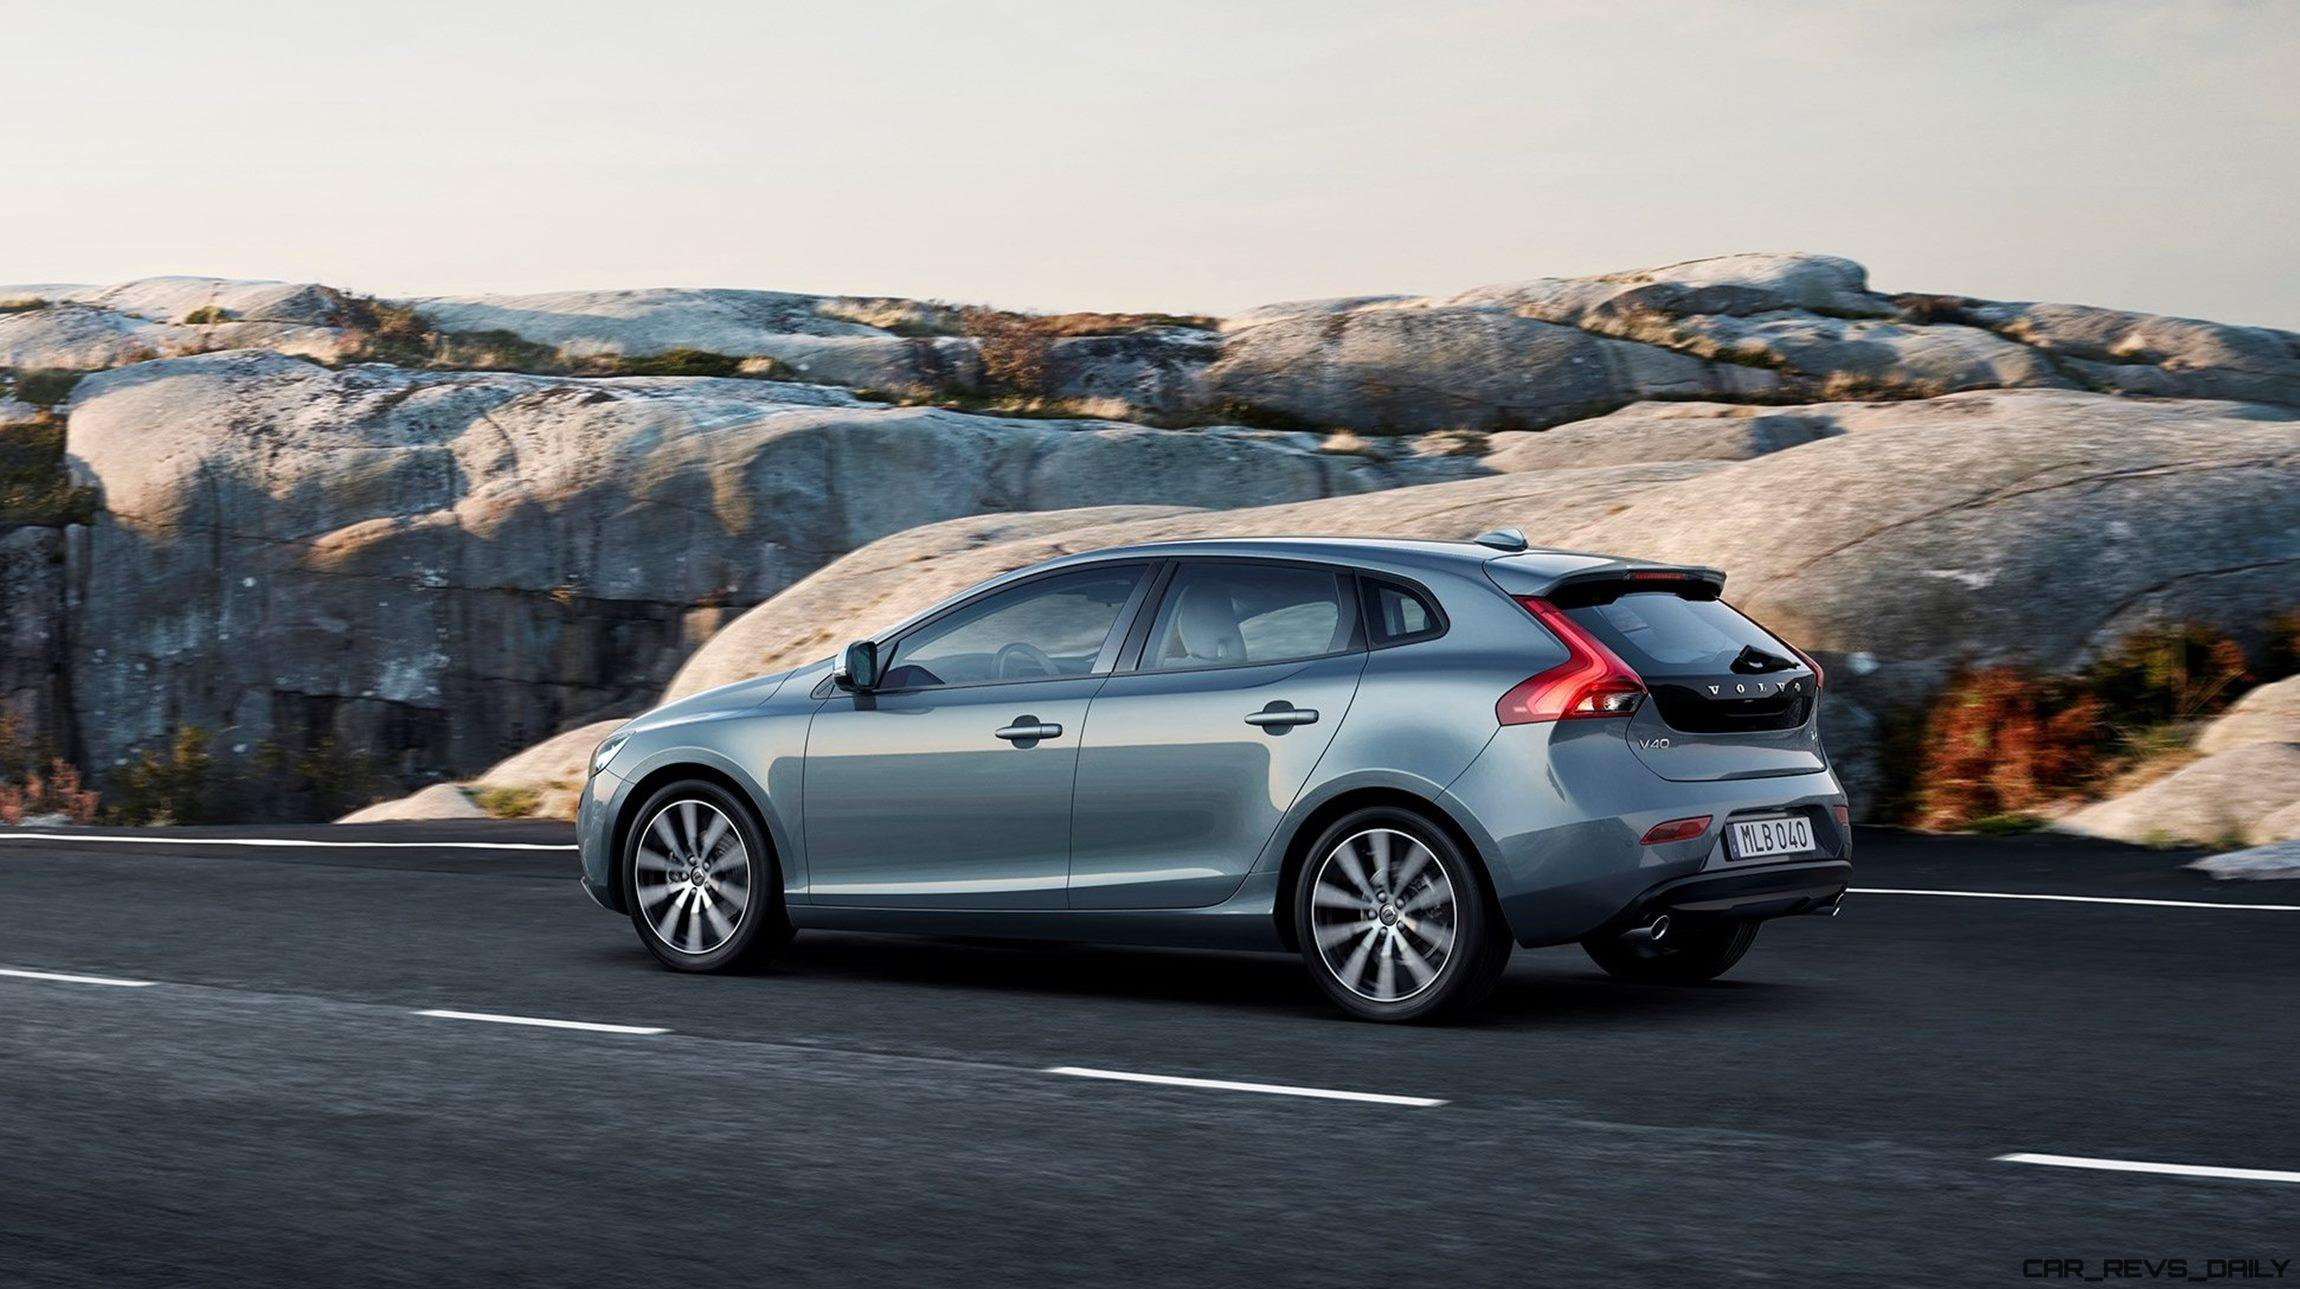 2017 Volvo V40 Cross Country photo - 4